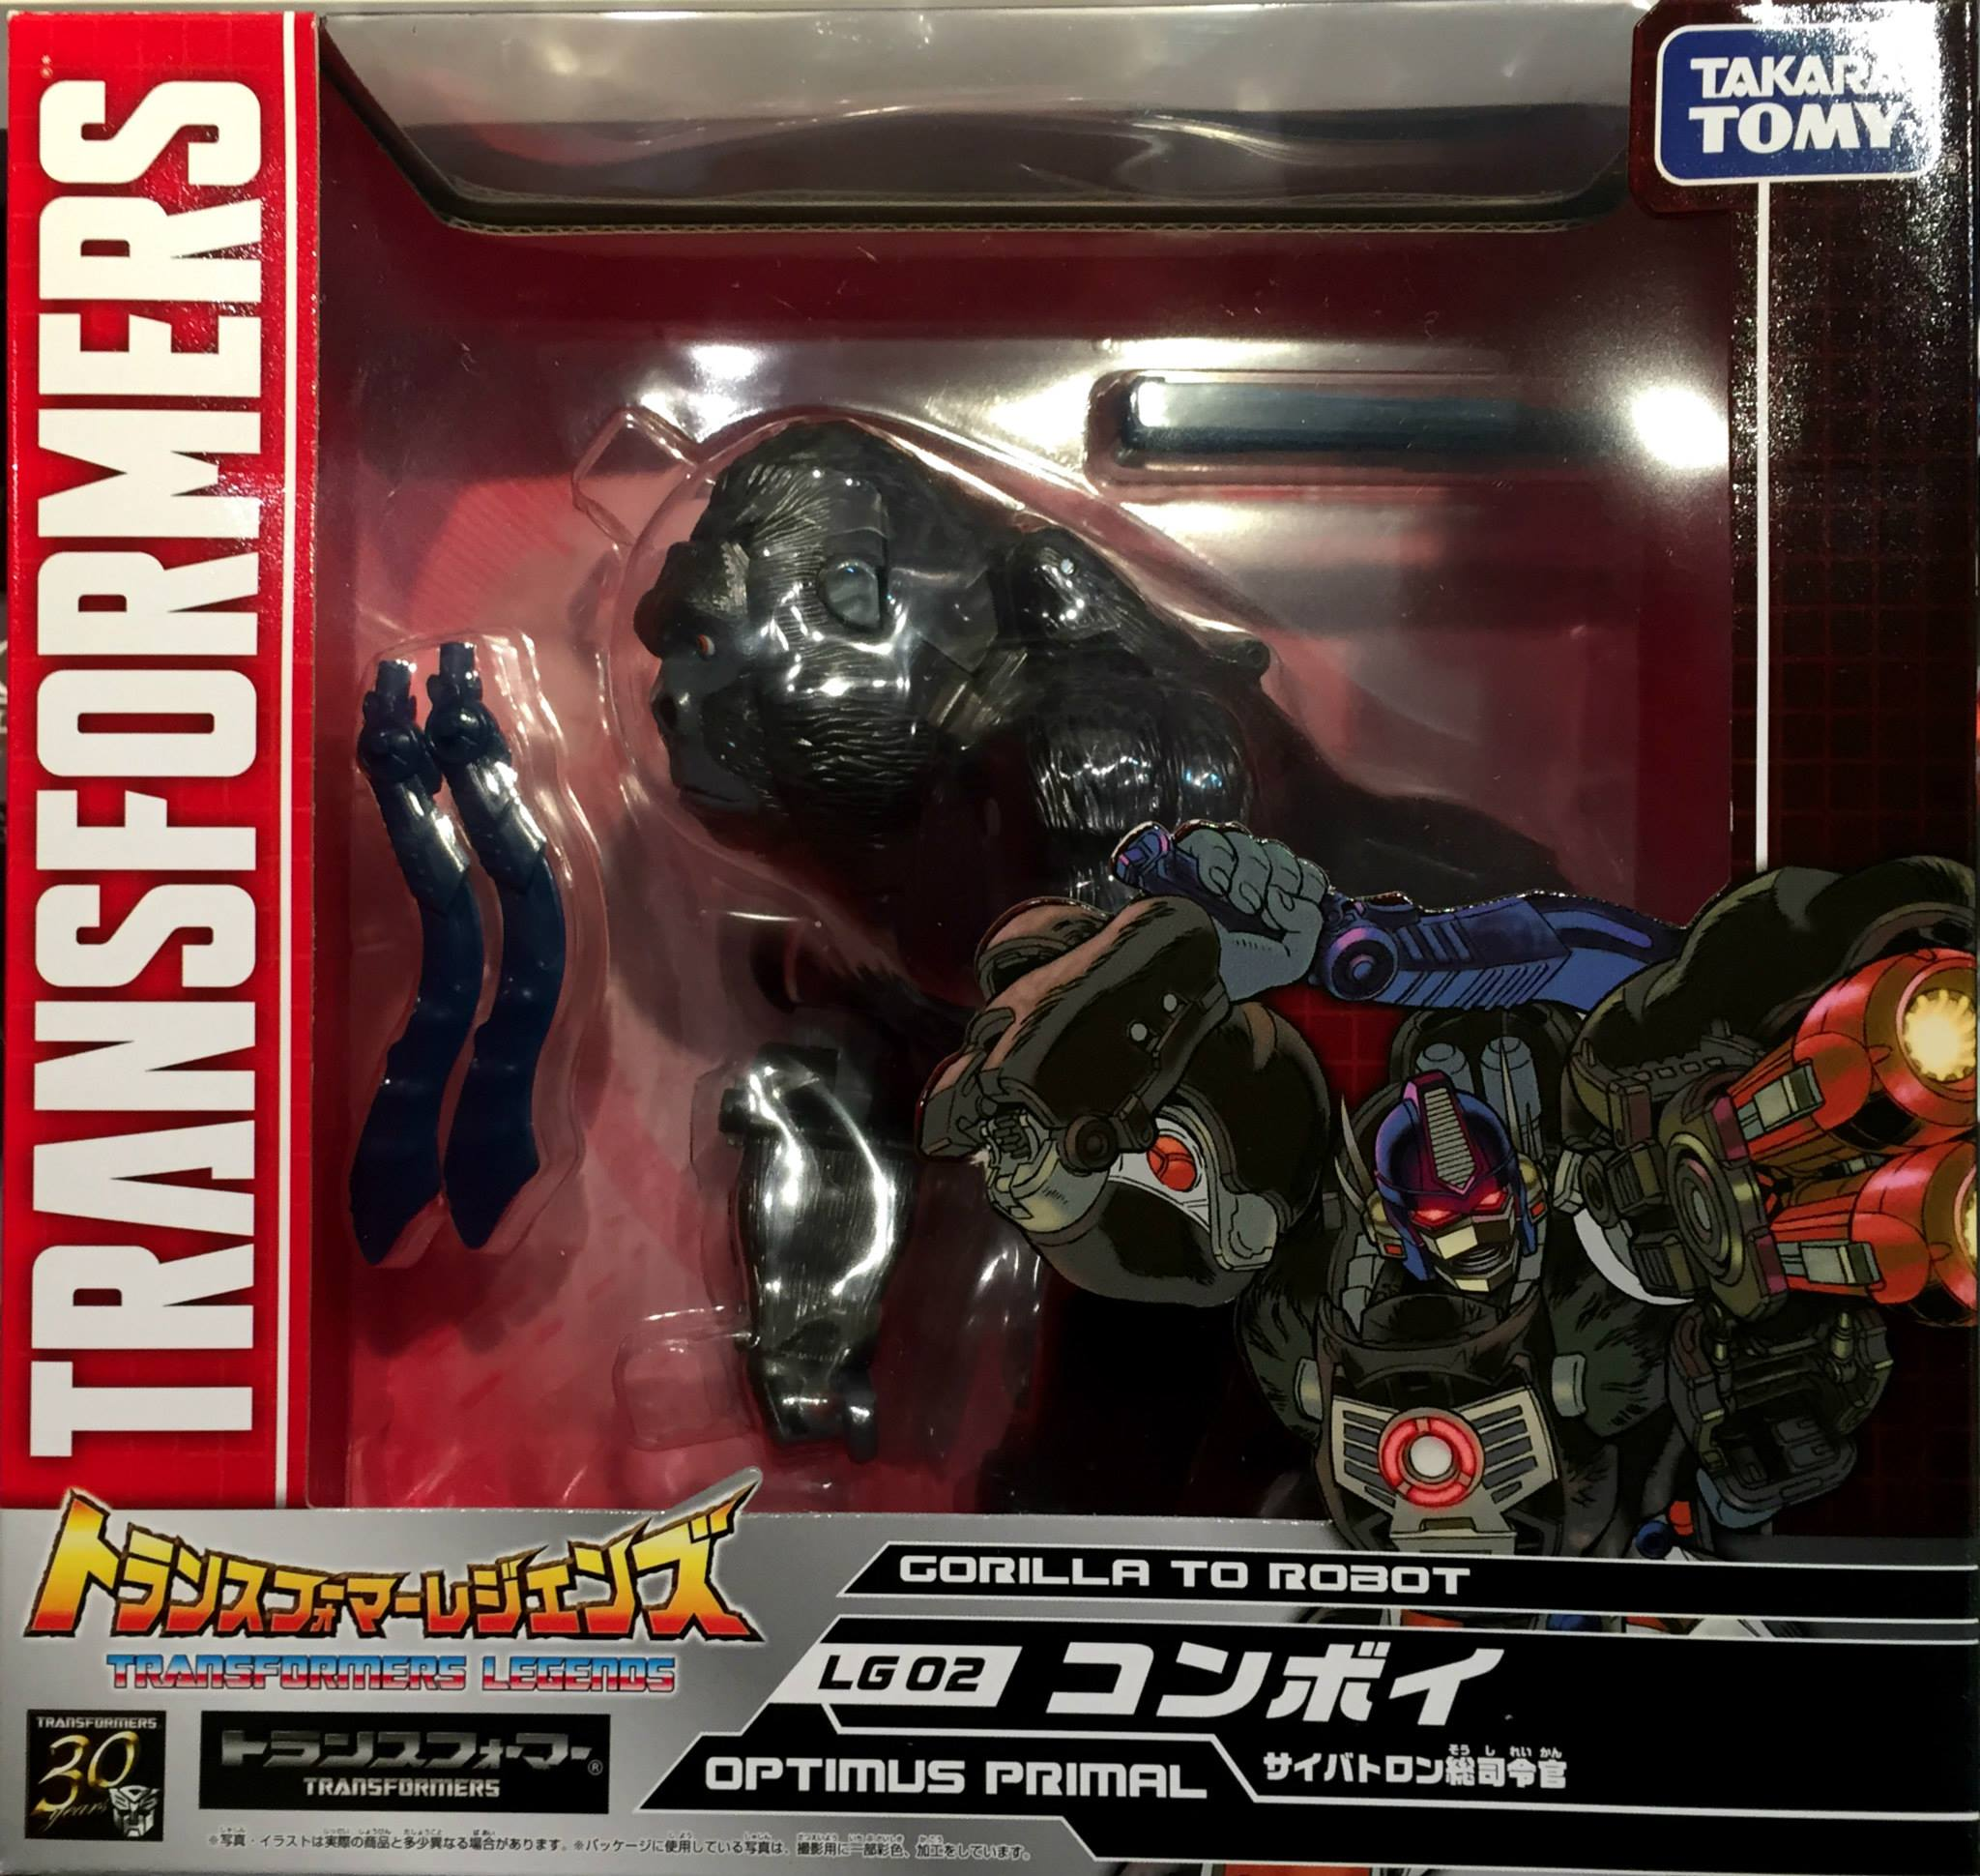 Takara Tomy Transformers Legends LG02 Generations Optimus Prime